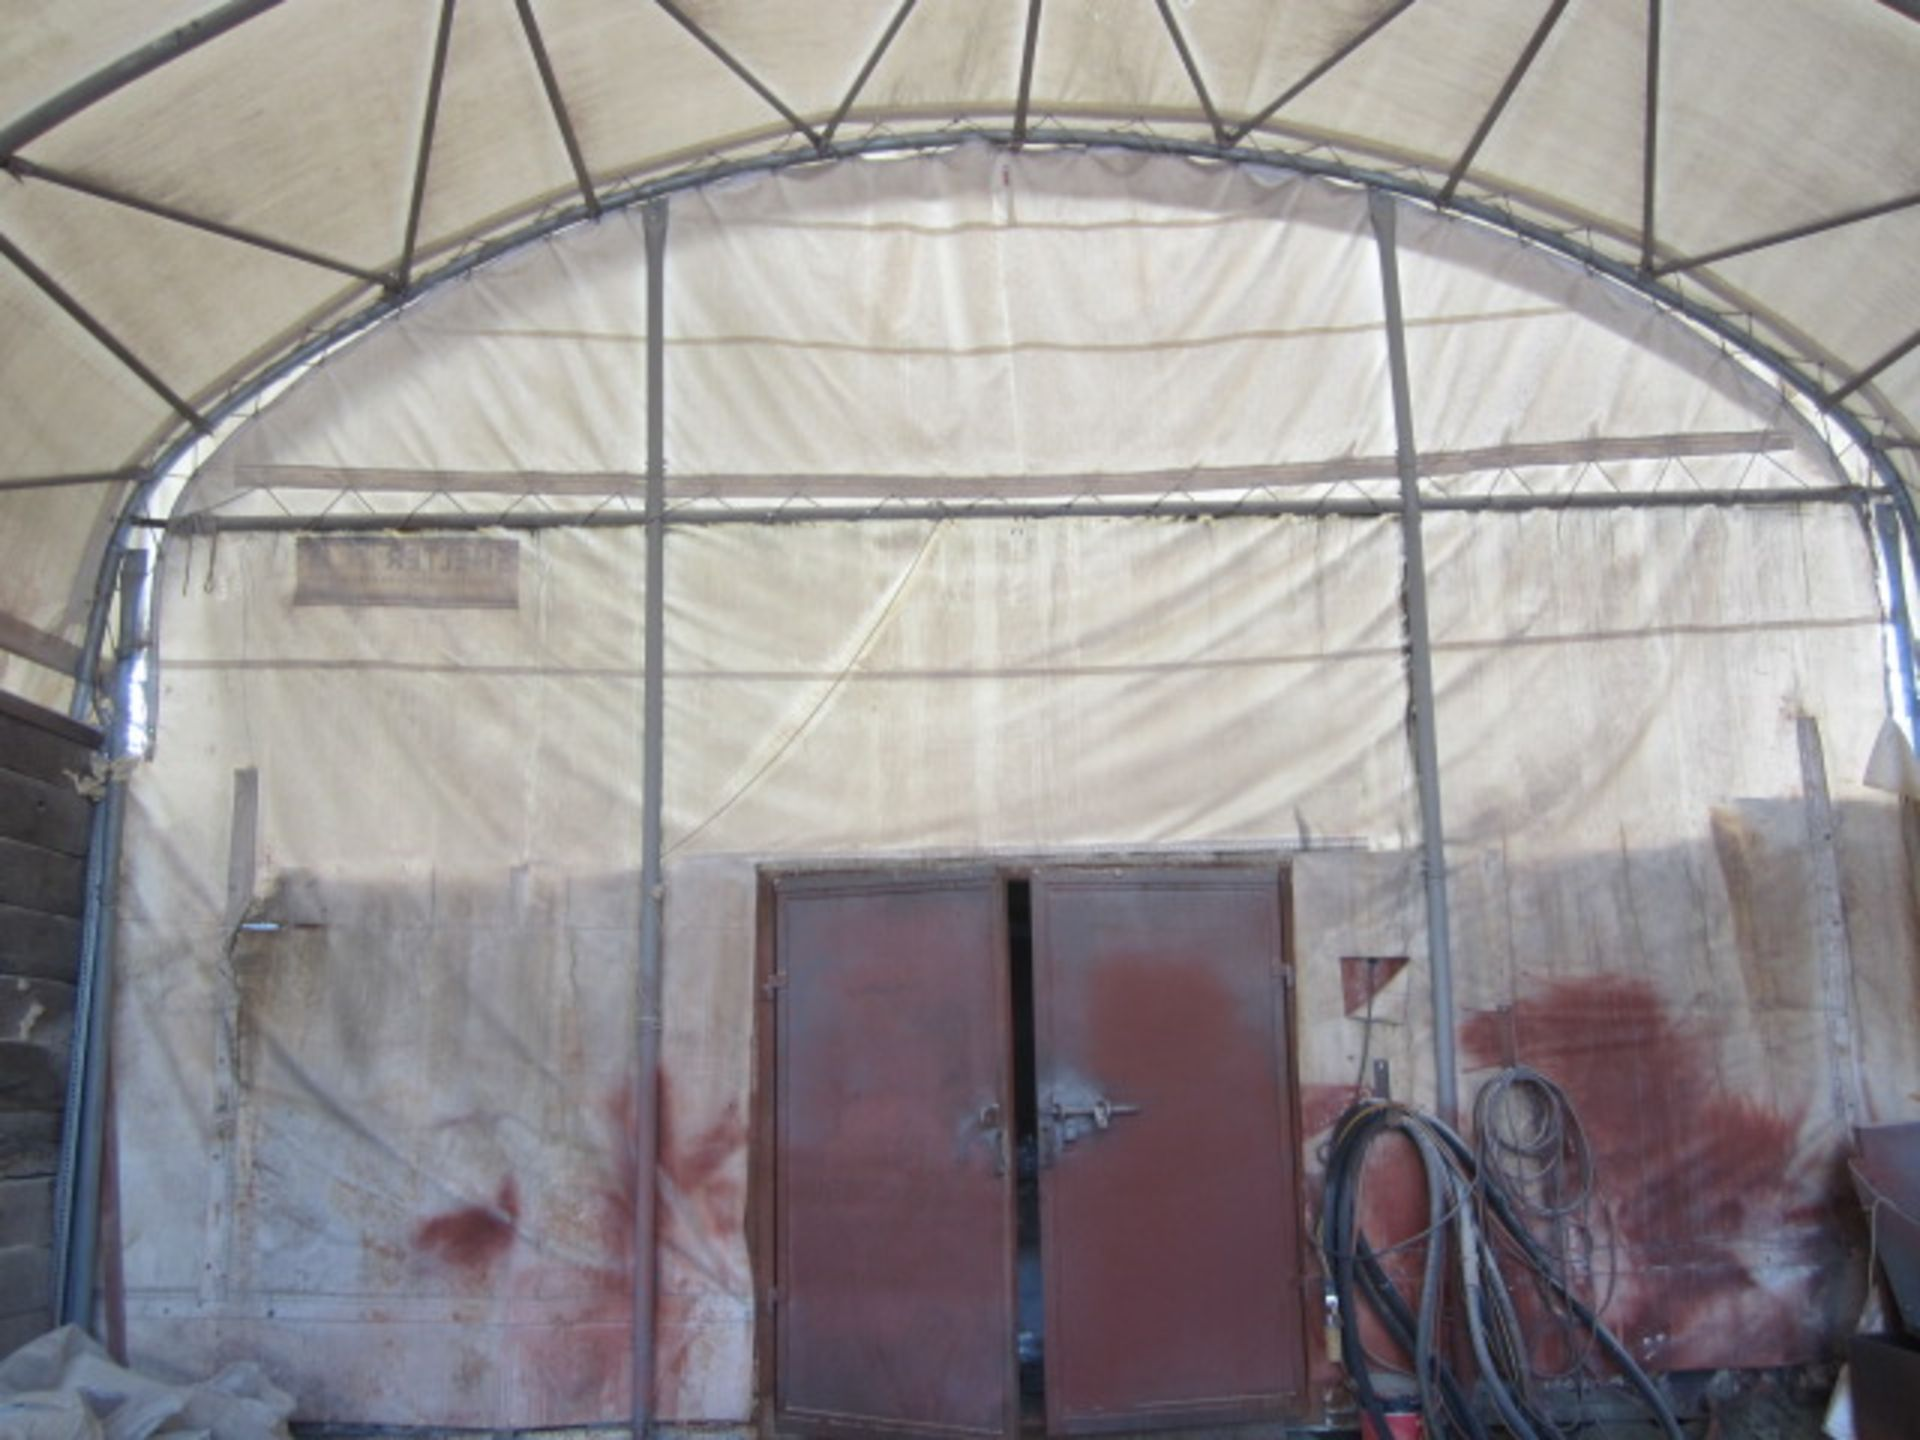 Shelter - IT portable industrial canopy, tubular frame, approx. 40ft length x 22ft width x 20ft - Image 3 of 6